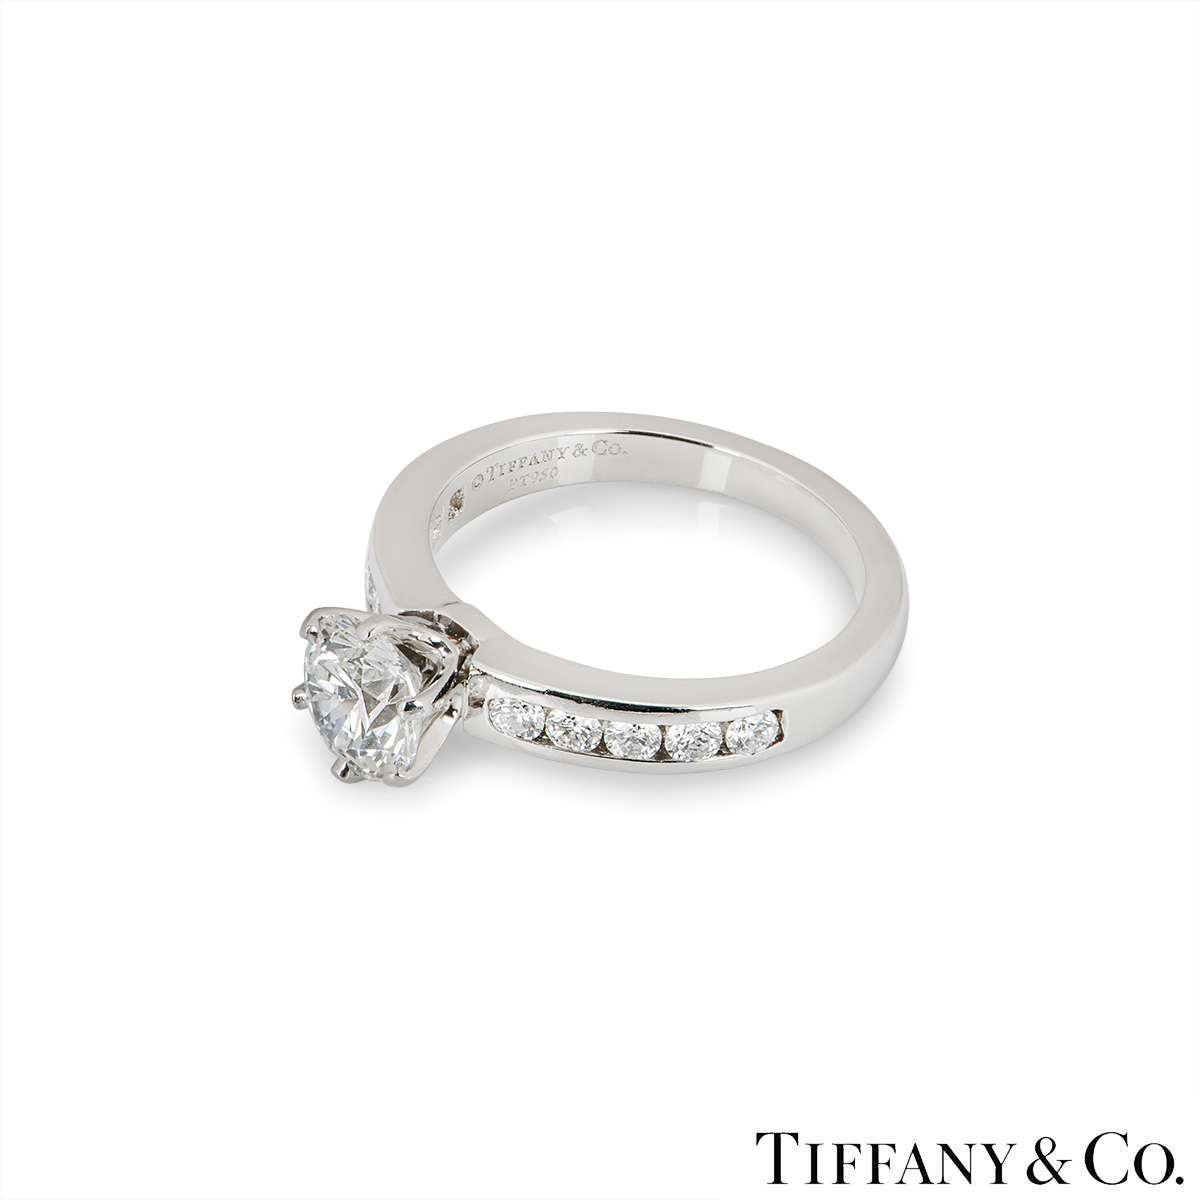 Tiffany & Co. Platinum Diamond Ring 1.04ct G/VS1 XXX